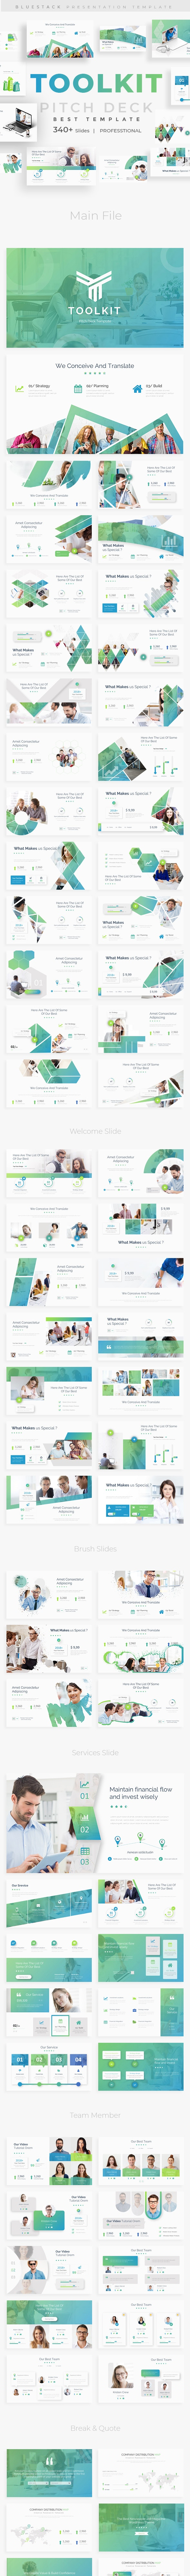 ToolKit Pitch Deck Google Slide Template - Google Slides Presentation Templates